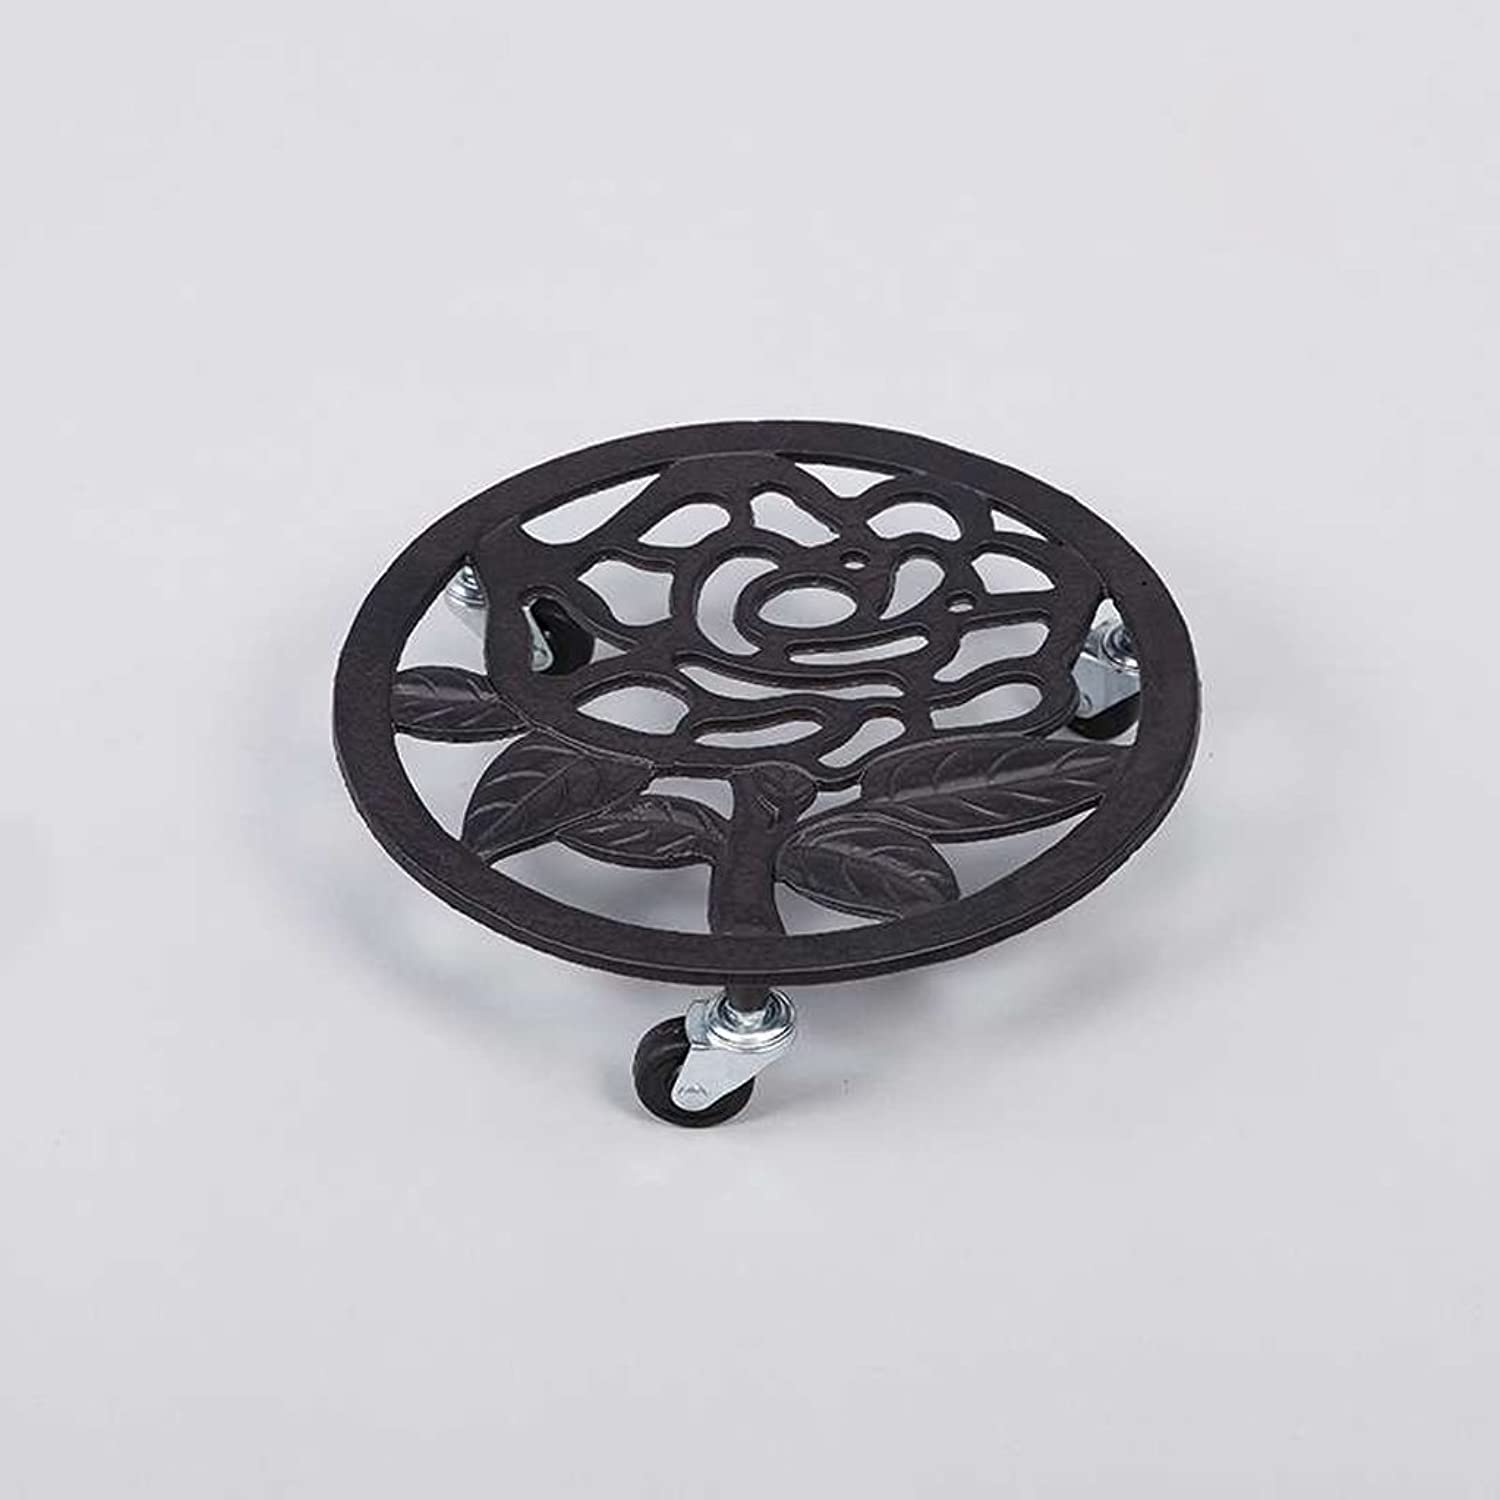 MBD 11.8 Inch Heavy Duty Iron Movable Potted Plant Stand Flowerpot Holder 4 Wheels Rolling Base